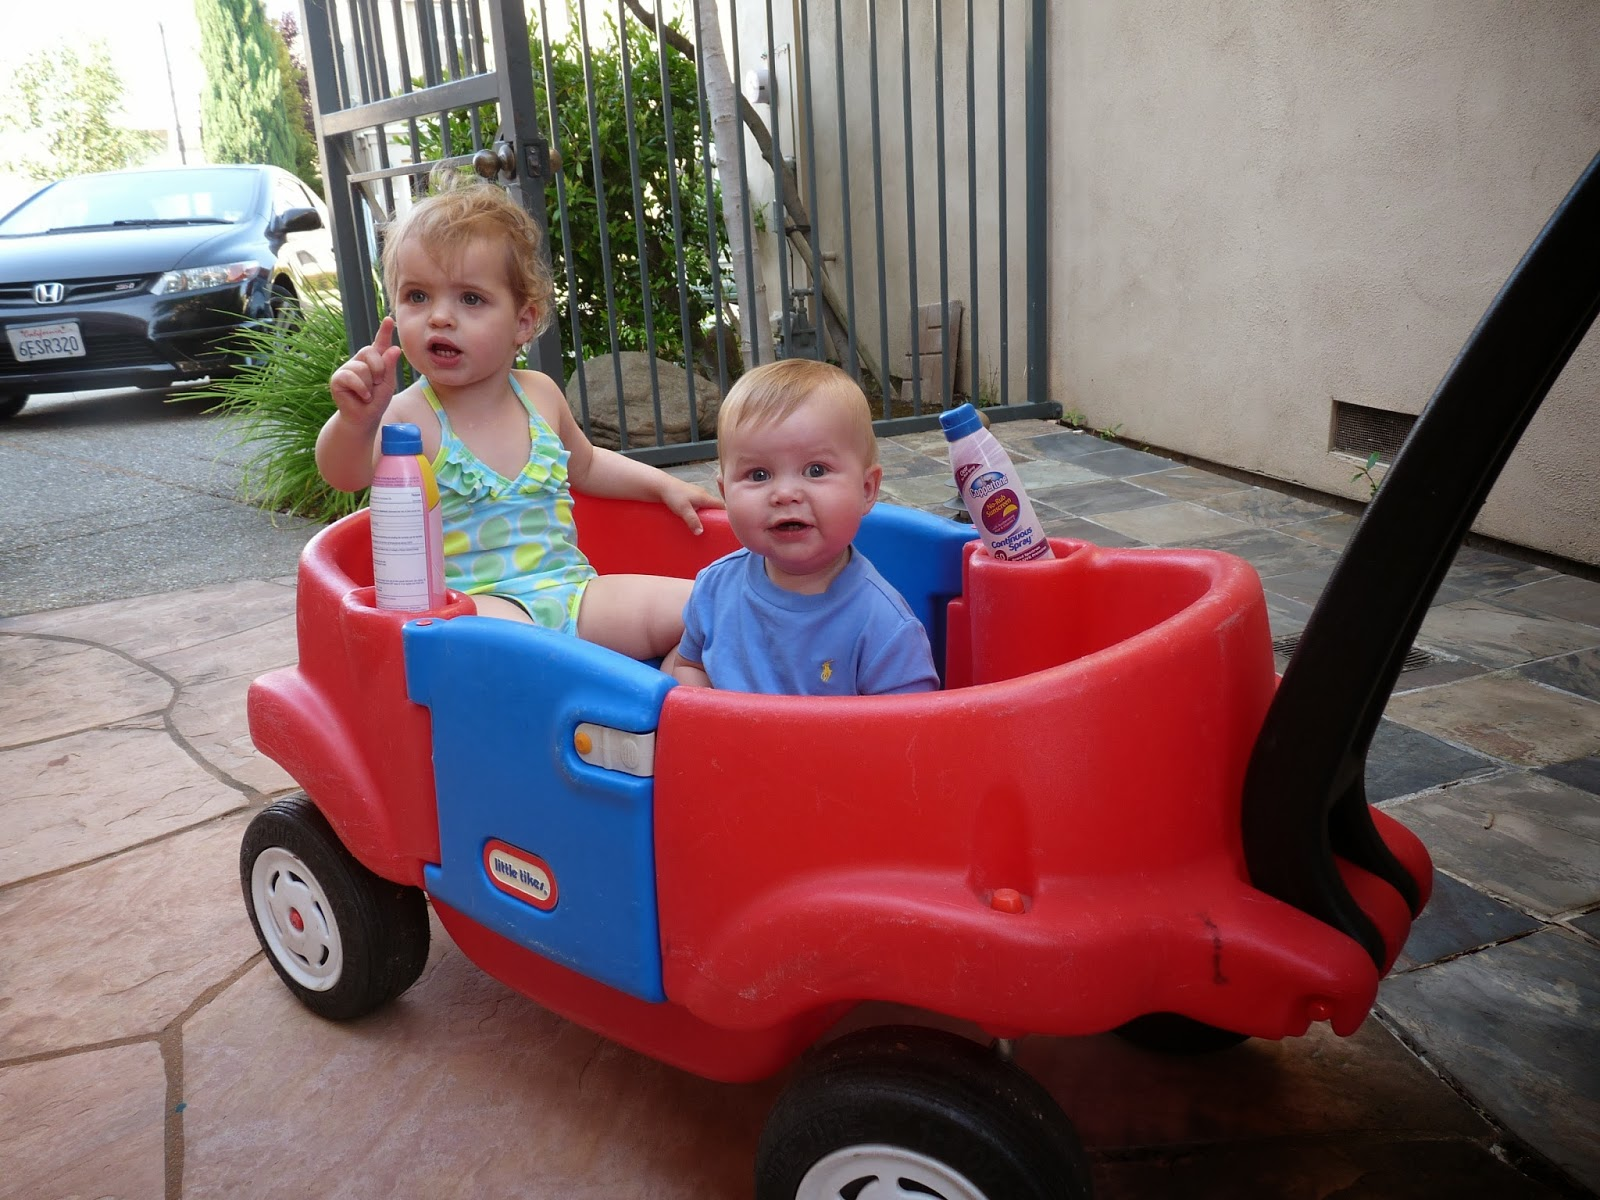 Freddie off to the pool with Lucia  in the wagon